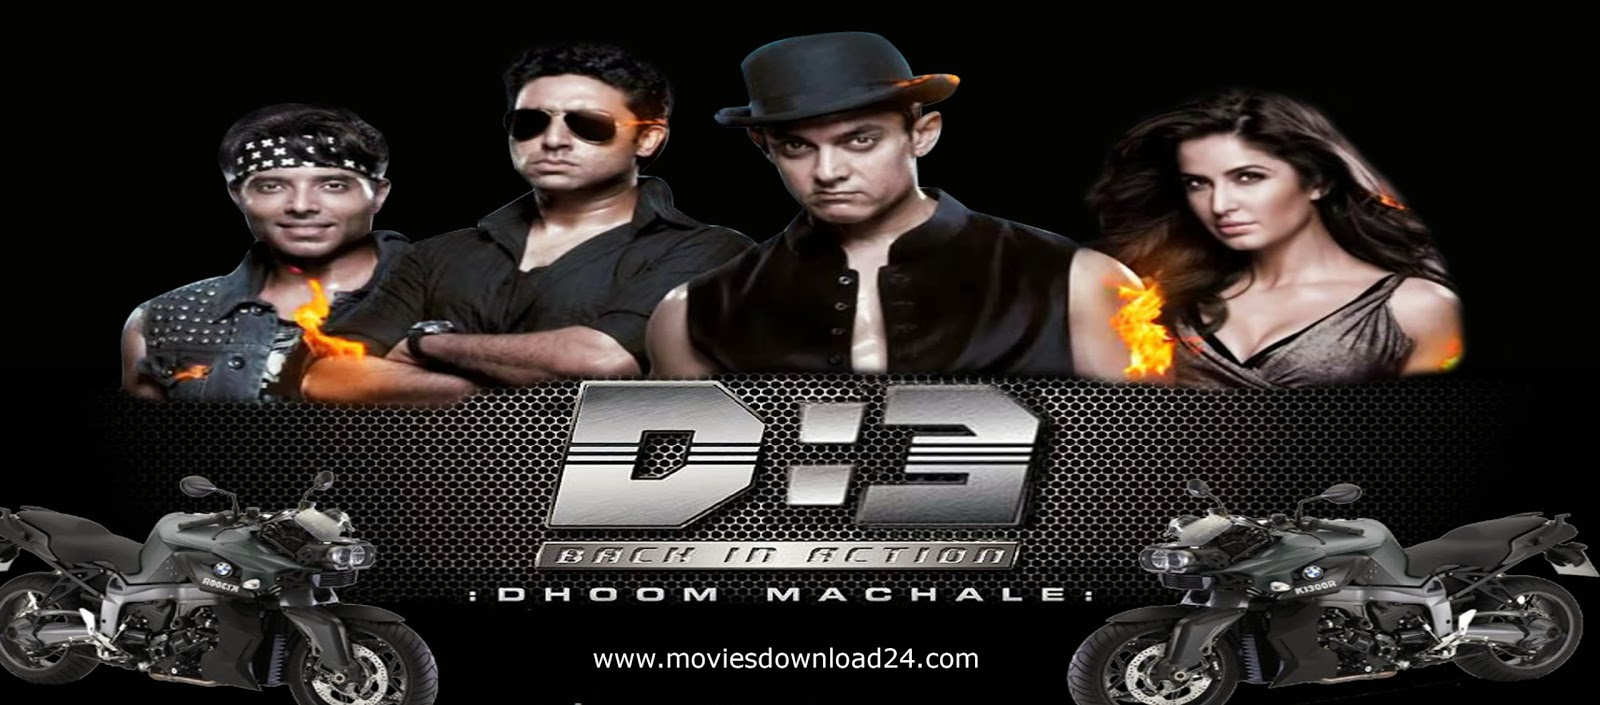 Dhoom 3 2013 full movie free download  Full Movie Free Download